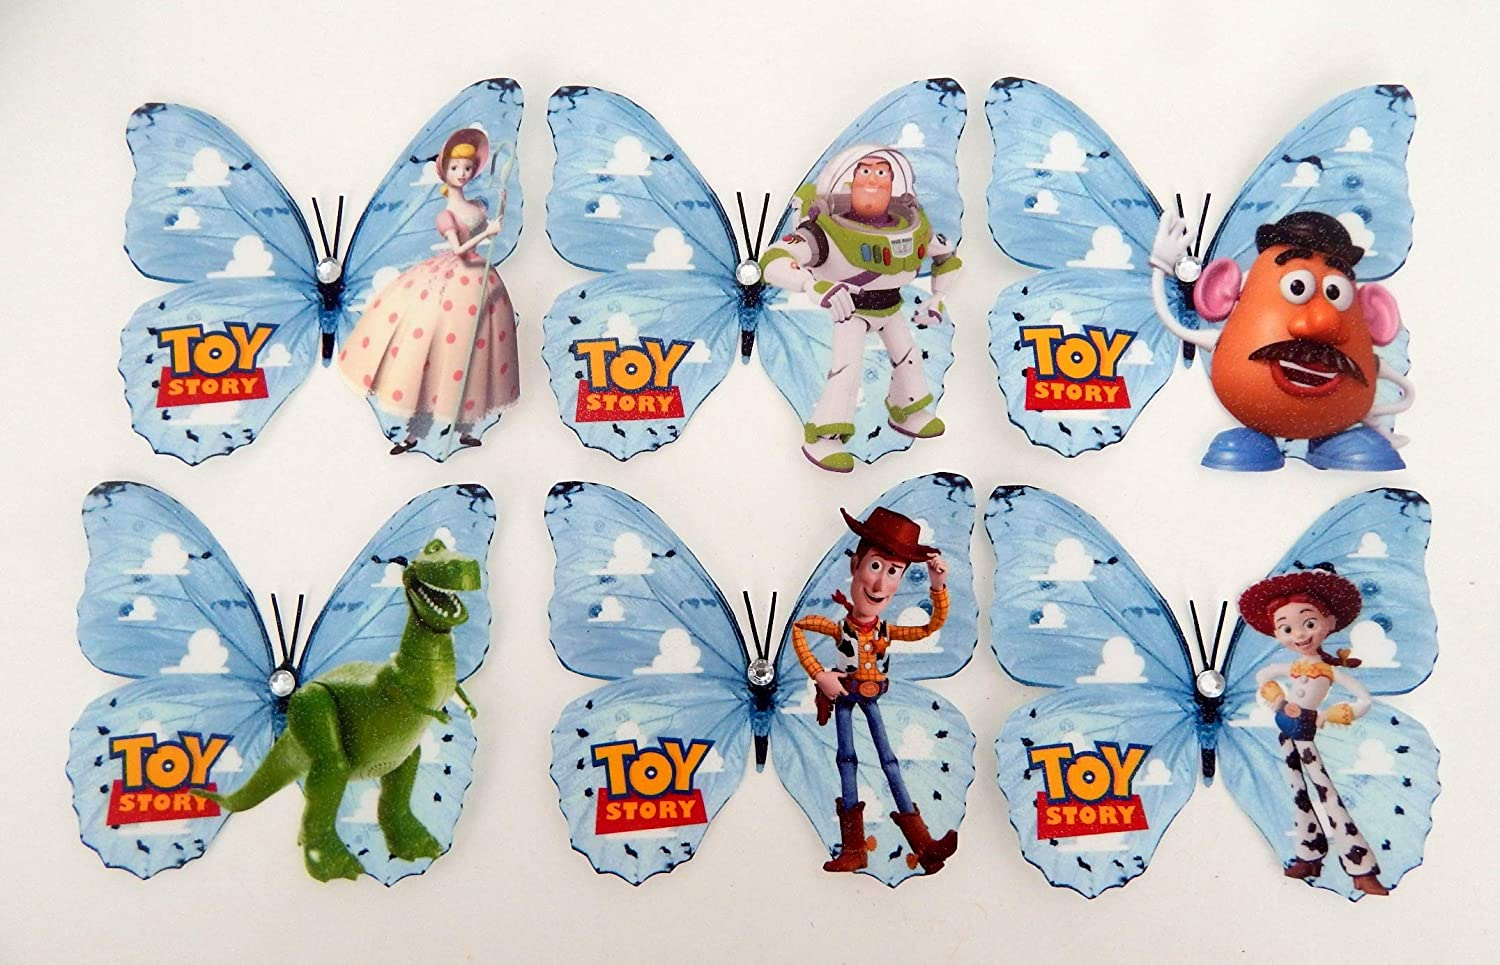 Toy Story Decorations 3d Toy Story 3d Butterflies Buzz Light Year Woody Bo Beep Children S Bedroom Decor Unique To Flutterframes Amazon Co Uk Handmade